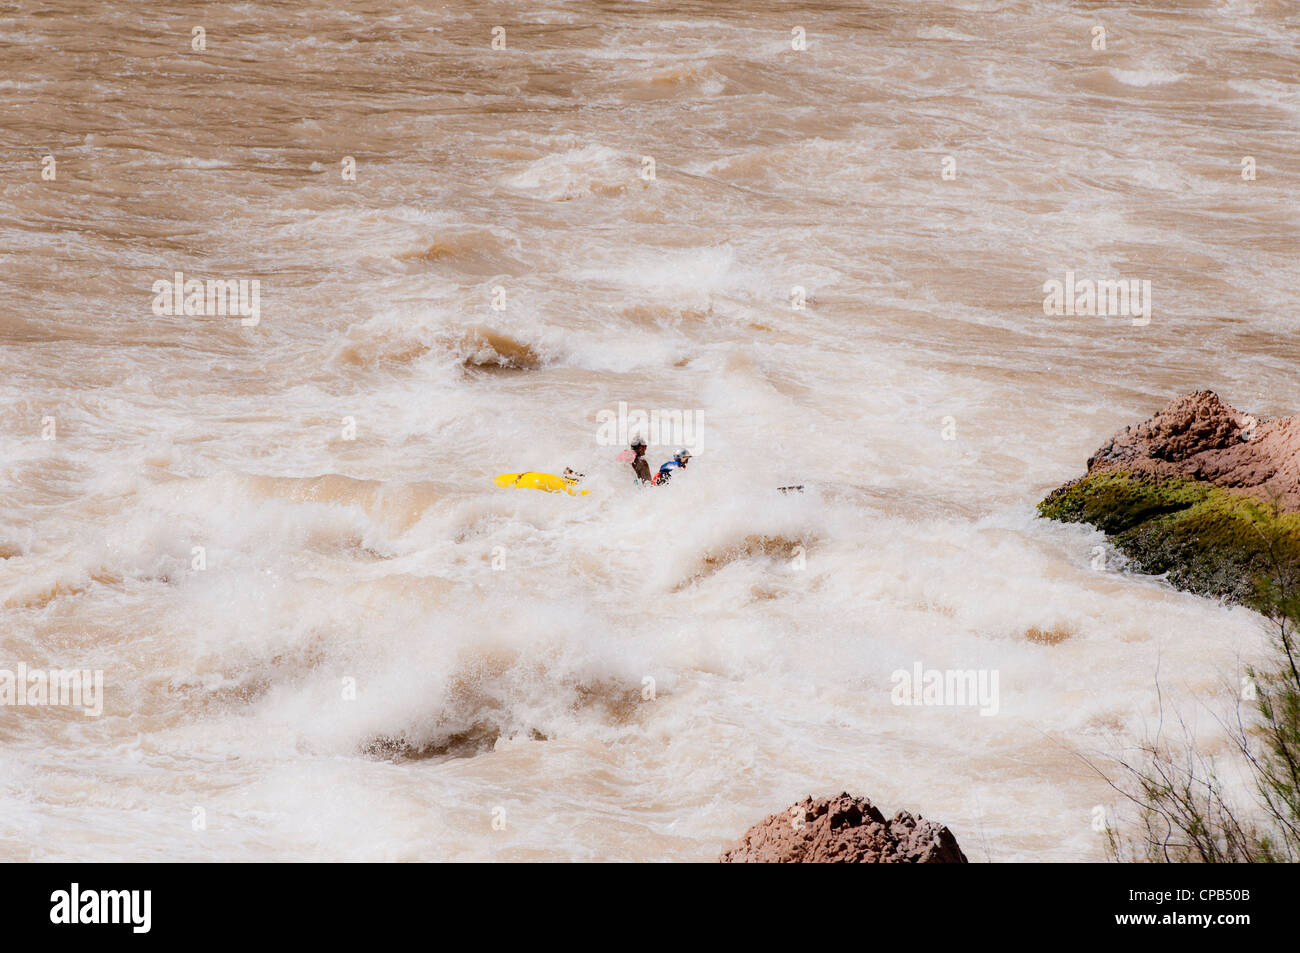 Whitewater rafting through Lava falls (class 9+) on the Colorado River in Grand Canyon National Park AZ - Stock Image